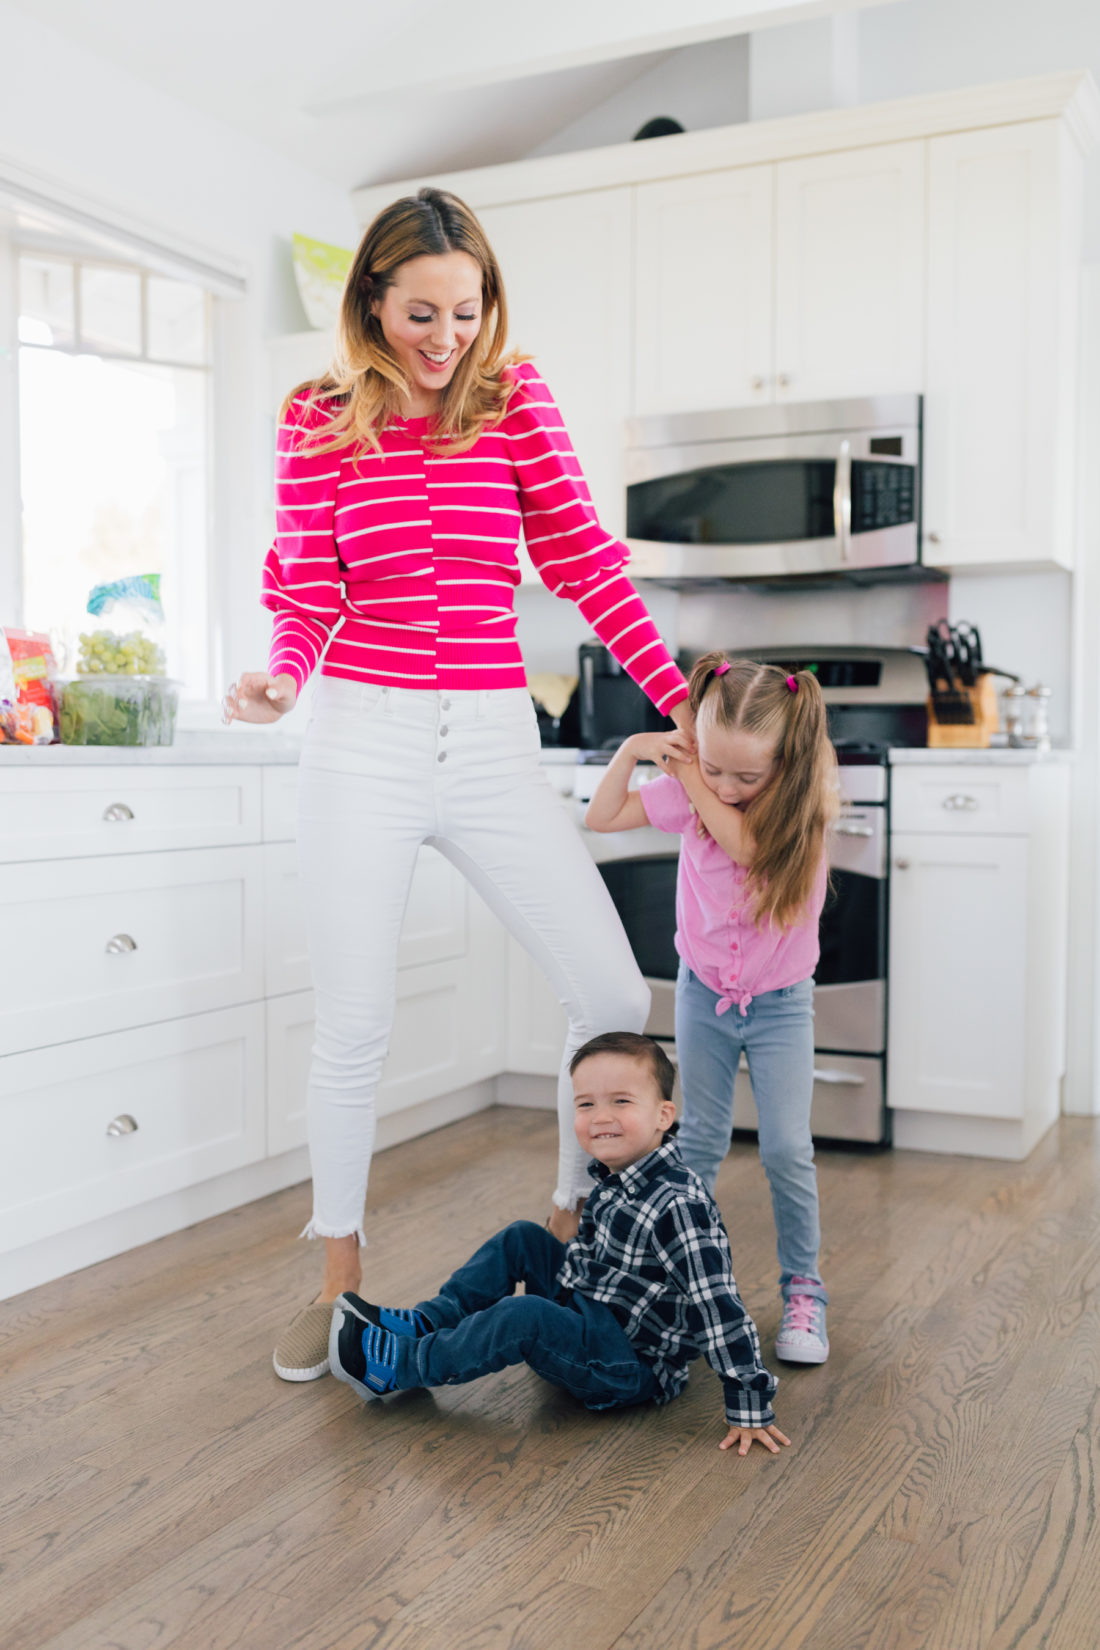 Eva Amurri Martino of Happily Eva After wears Sketchers wears Sepulvada Blvd a la Mode Slip-On in the kitchen with her kids Marlowe and Major